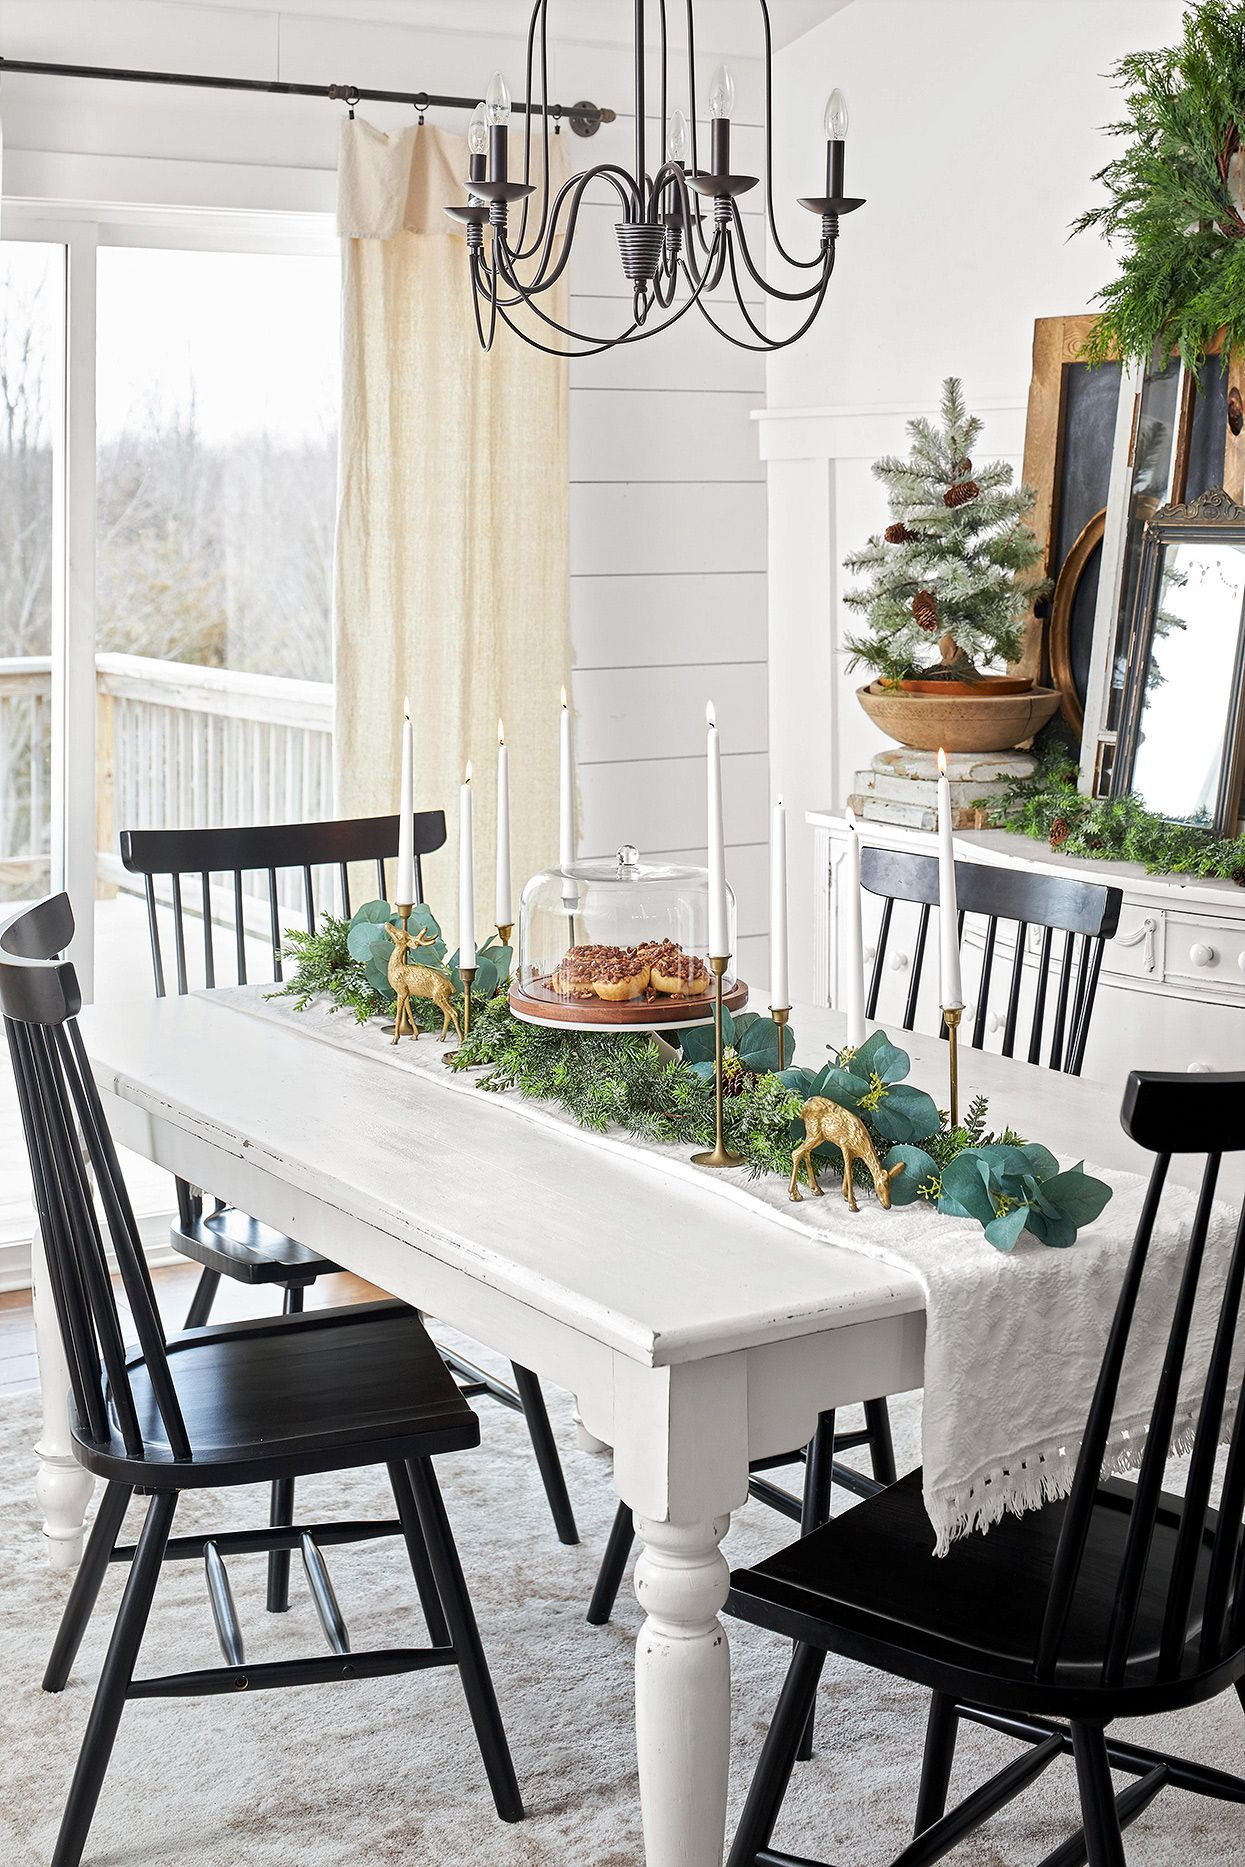 When we decorate with vintage Christmas decor, it transports us to those beloved gatherings of yesteryear. Recreate the memories by shopping antique shops, estate sales, and flea markets for vintage decor that brings wonder and nostalgia back to the holidays. #vintagechristmasdecor #christmasdecorations #holidaydecorideas #nostalgicchristmasdecorations #bhg